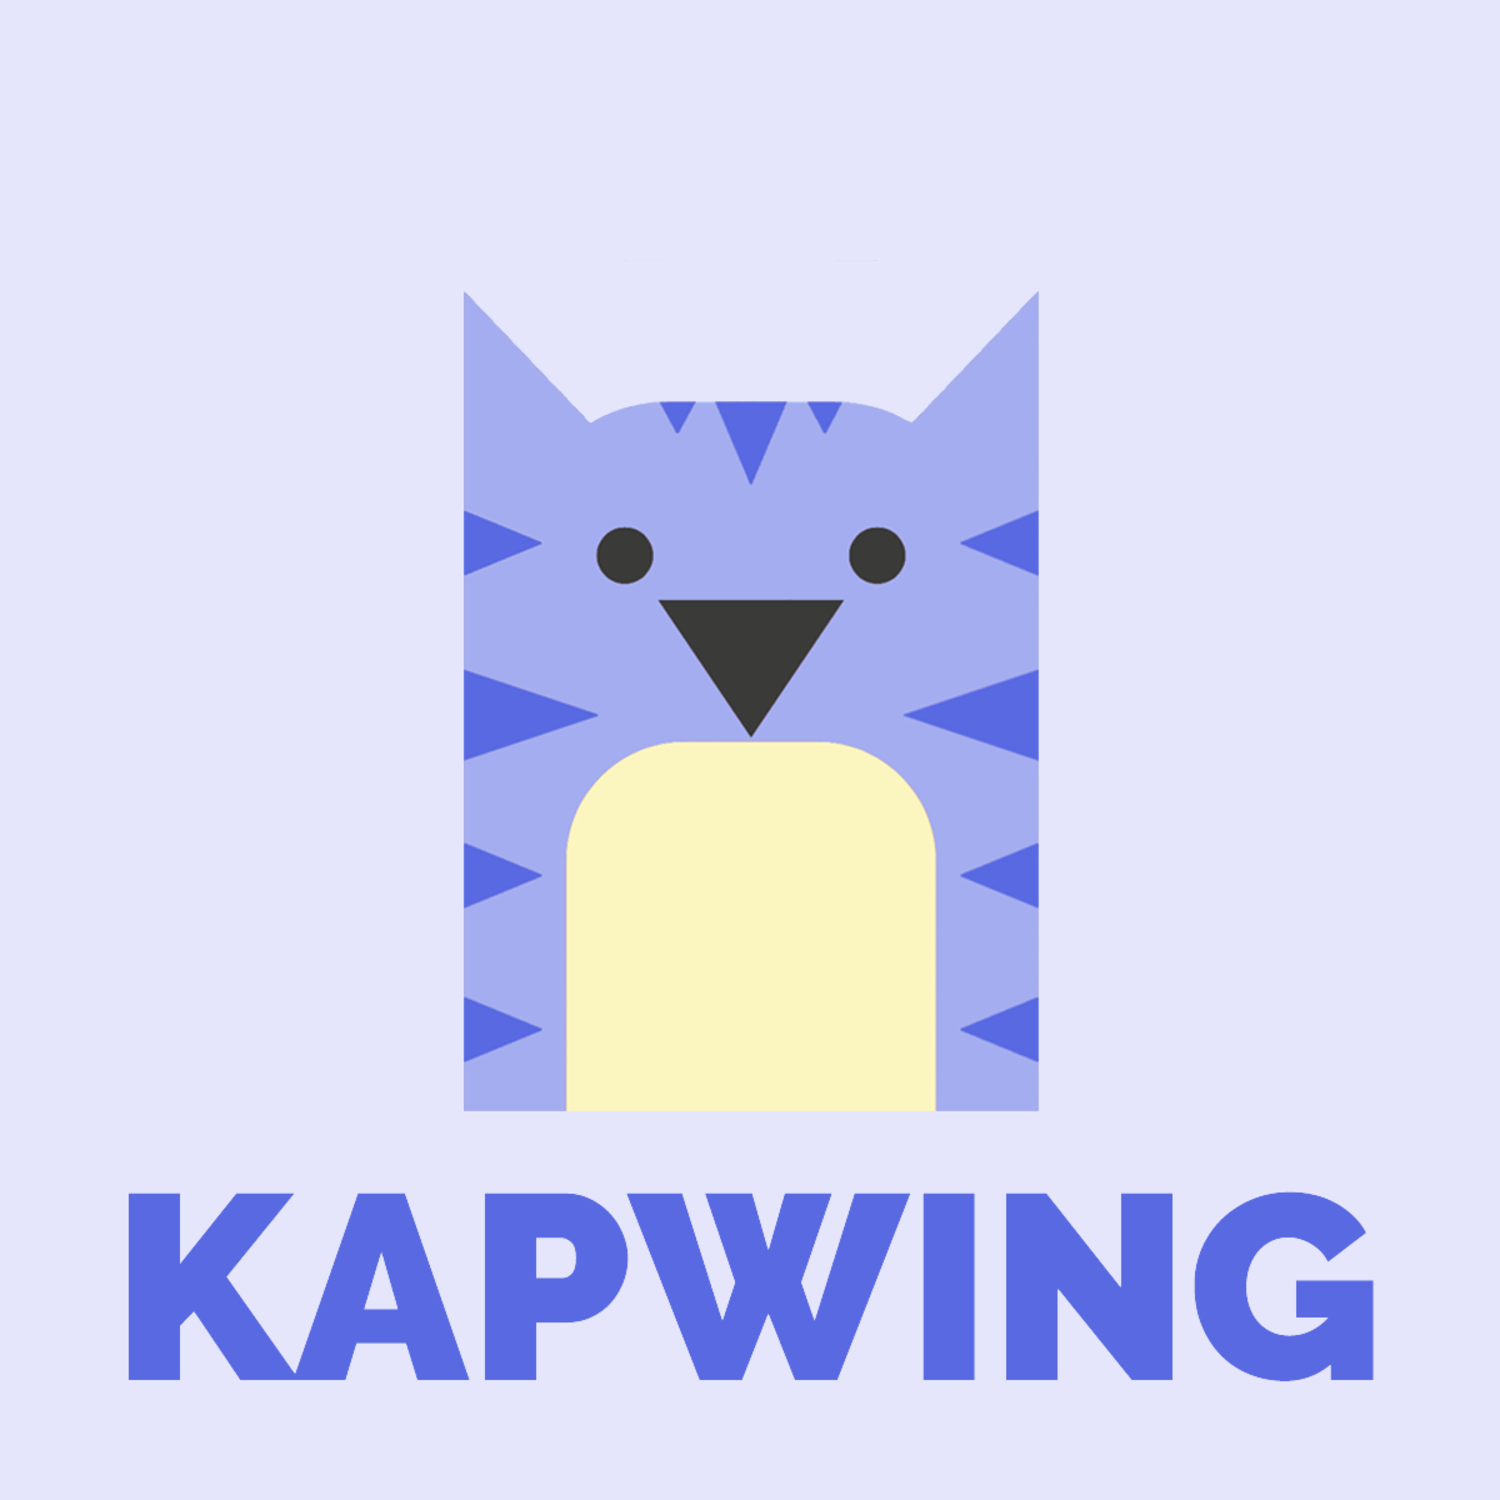 Kleiner Perkins, Shasta Ventures, Sinai Ventures invest $1.7 Million in Popular Video Maker Kapwing